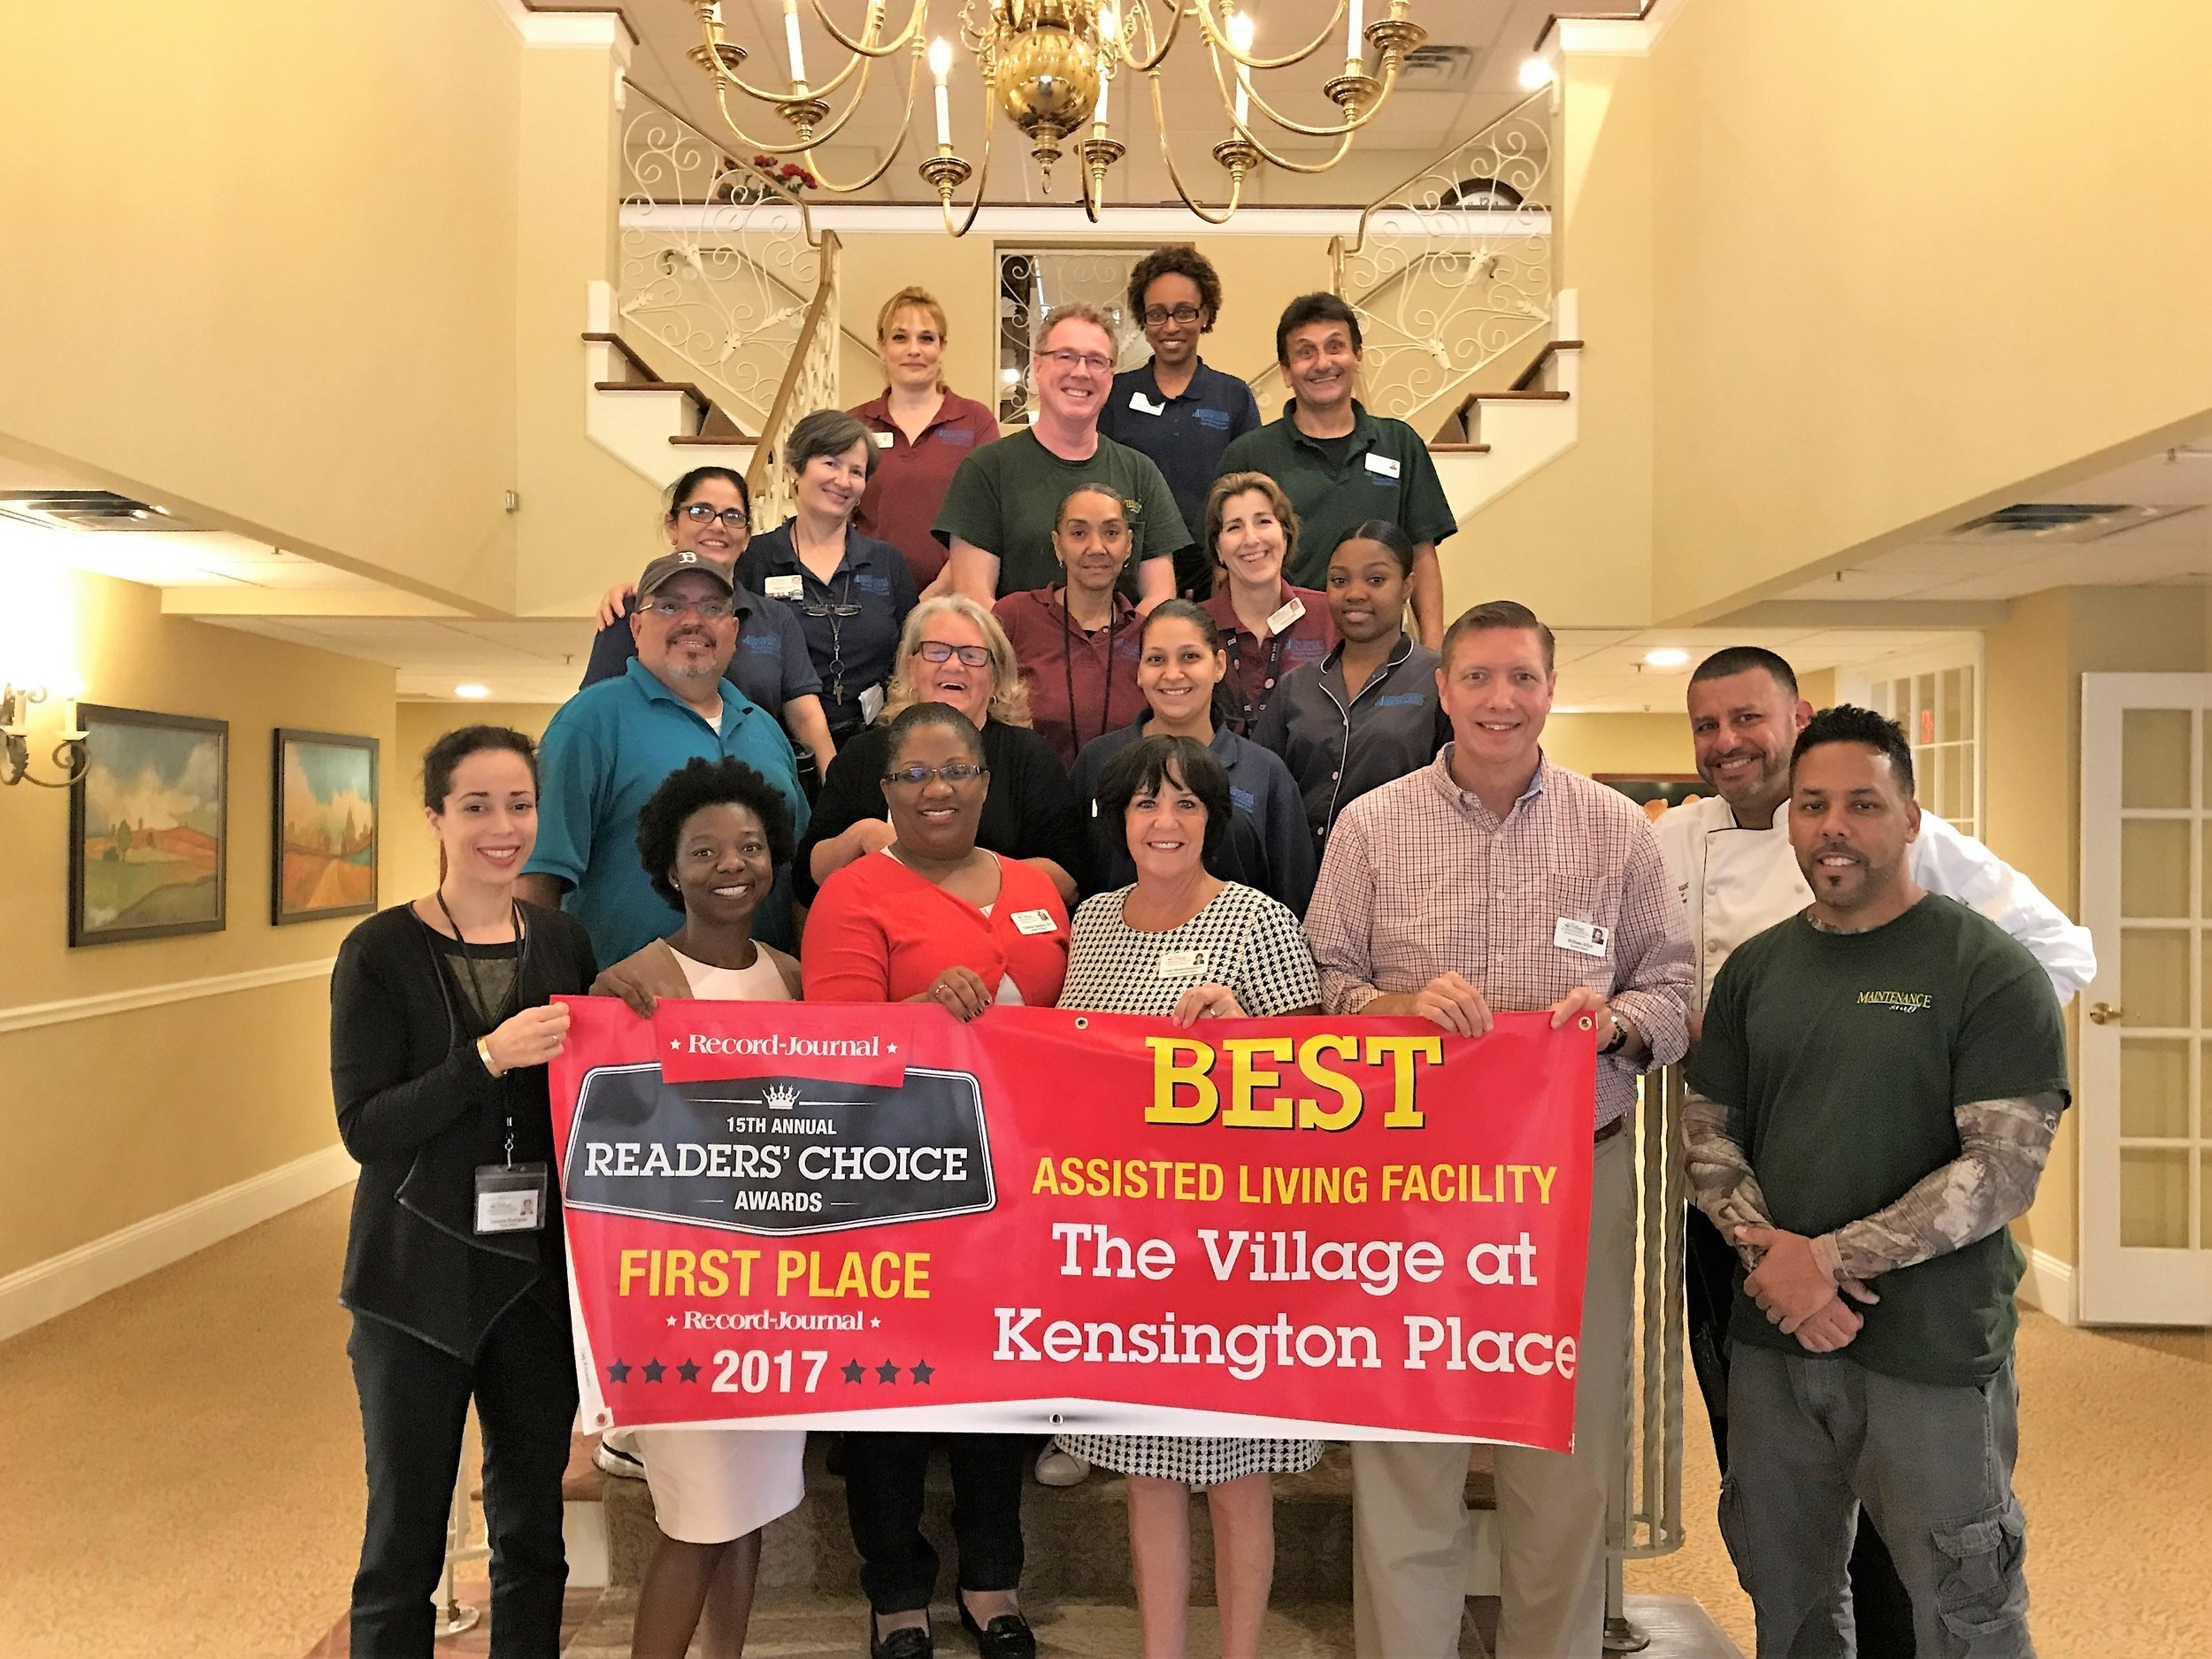 The  Record-Journal  daily newspaper covers a large area of central Connecticut that includes some big players in senior living. But when the team at  T he Village at Kensington Place in Meriden, Conn., learned their community was nominated for a  Record-Journal  Readers' Choice award, they were undaunted.